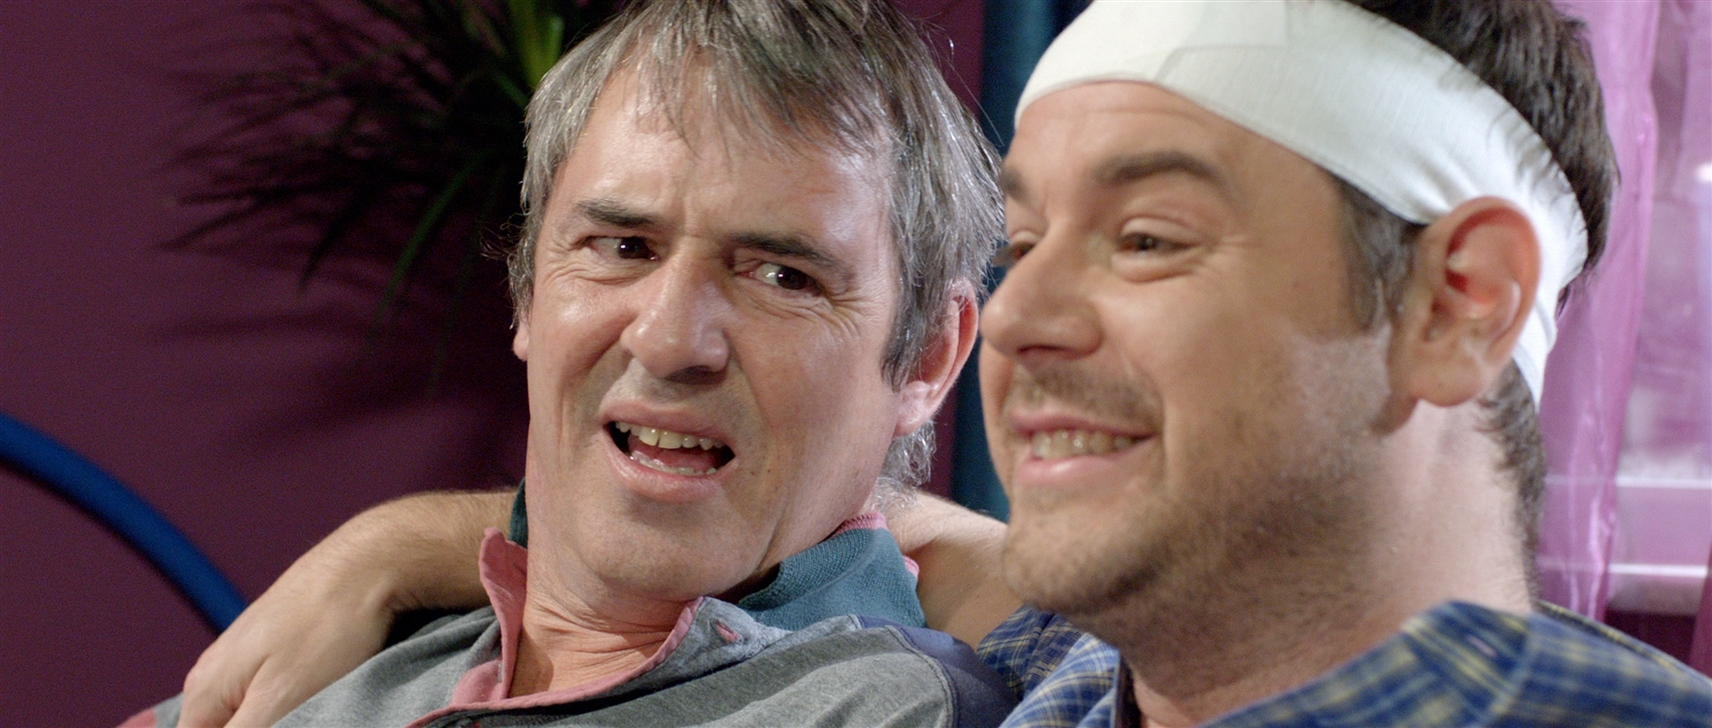 Danny Dyer and Neil Morrissey in Run for Your Wife (2012)